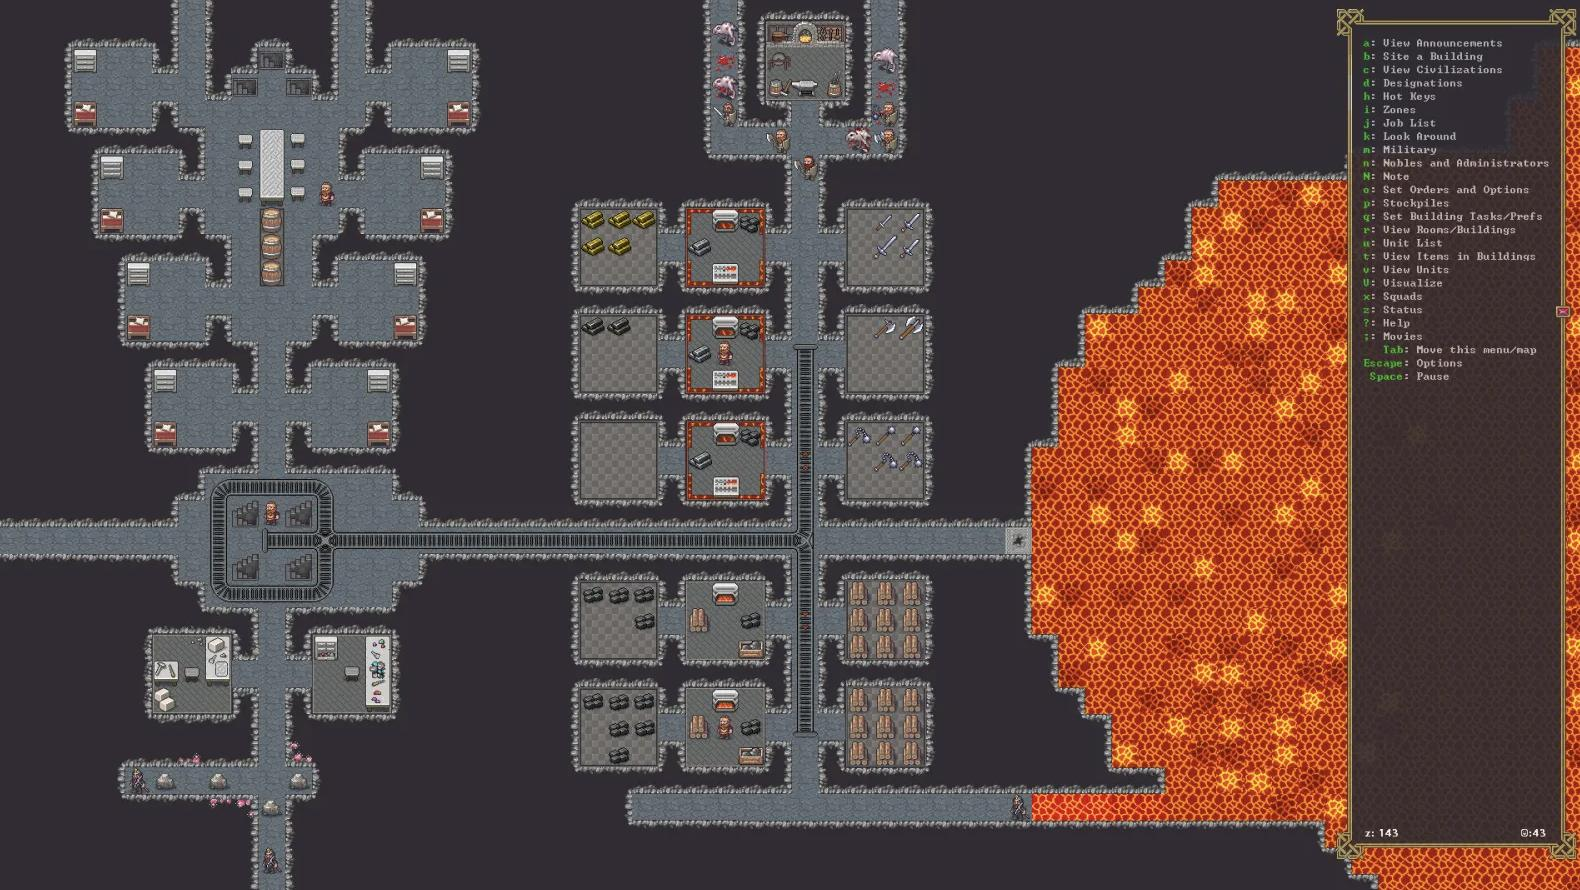 Dwarf Fortress is coming to Steam because its developer needs healthcare: https://t.co/XuHR1xUoym https://t.co/dKUDXRGOwF